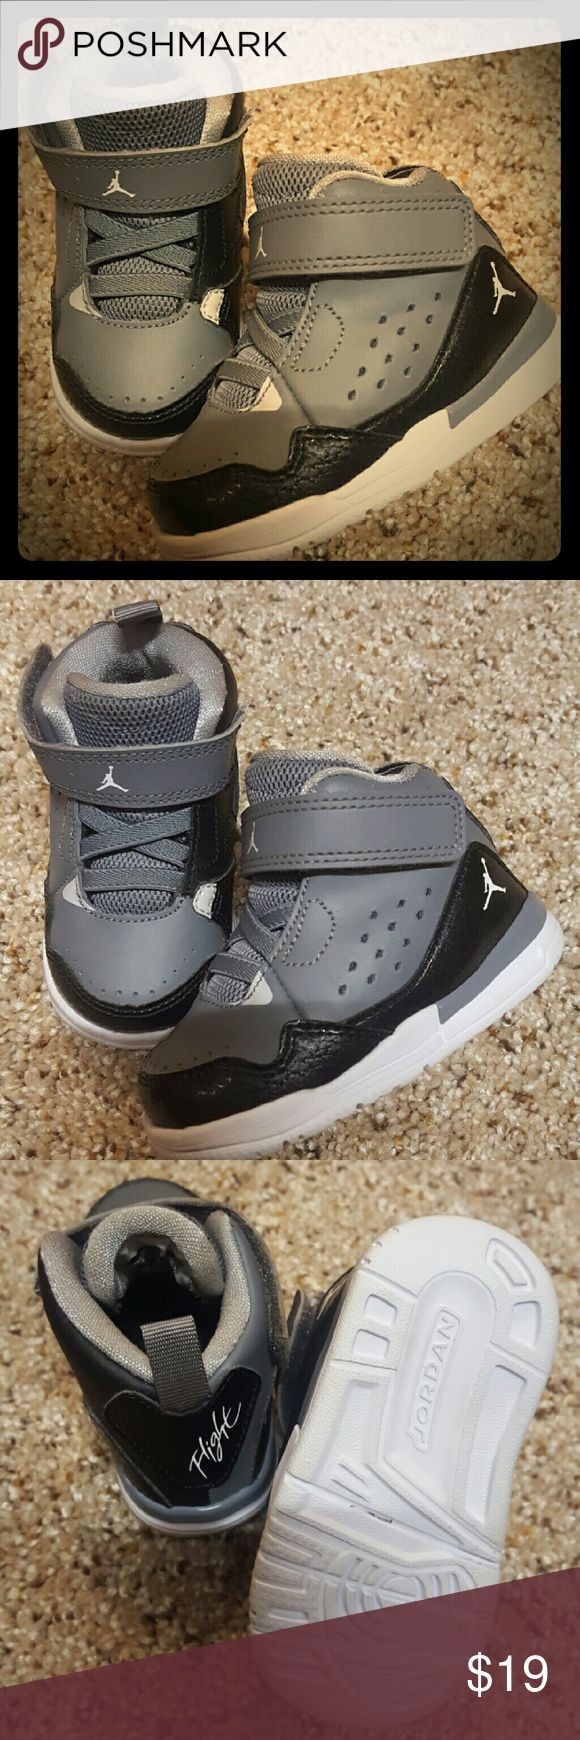 LIKE NEW Toddler Jordan Flight Shoes 4c 4c Toddler Jordans... so cute. Jordan Shoes Baby & Walker